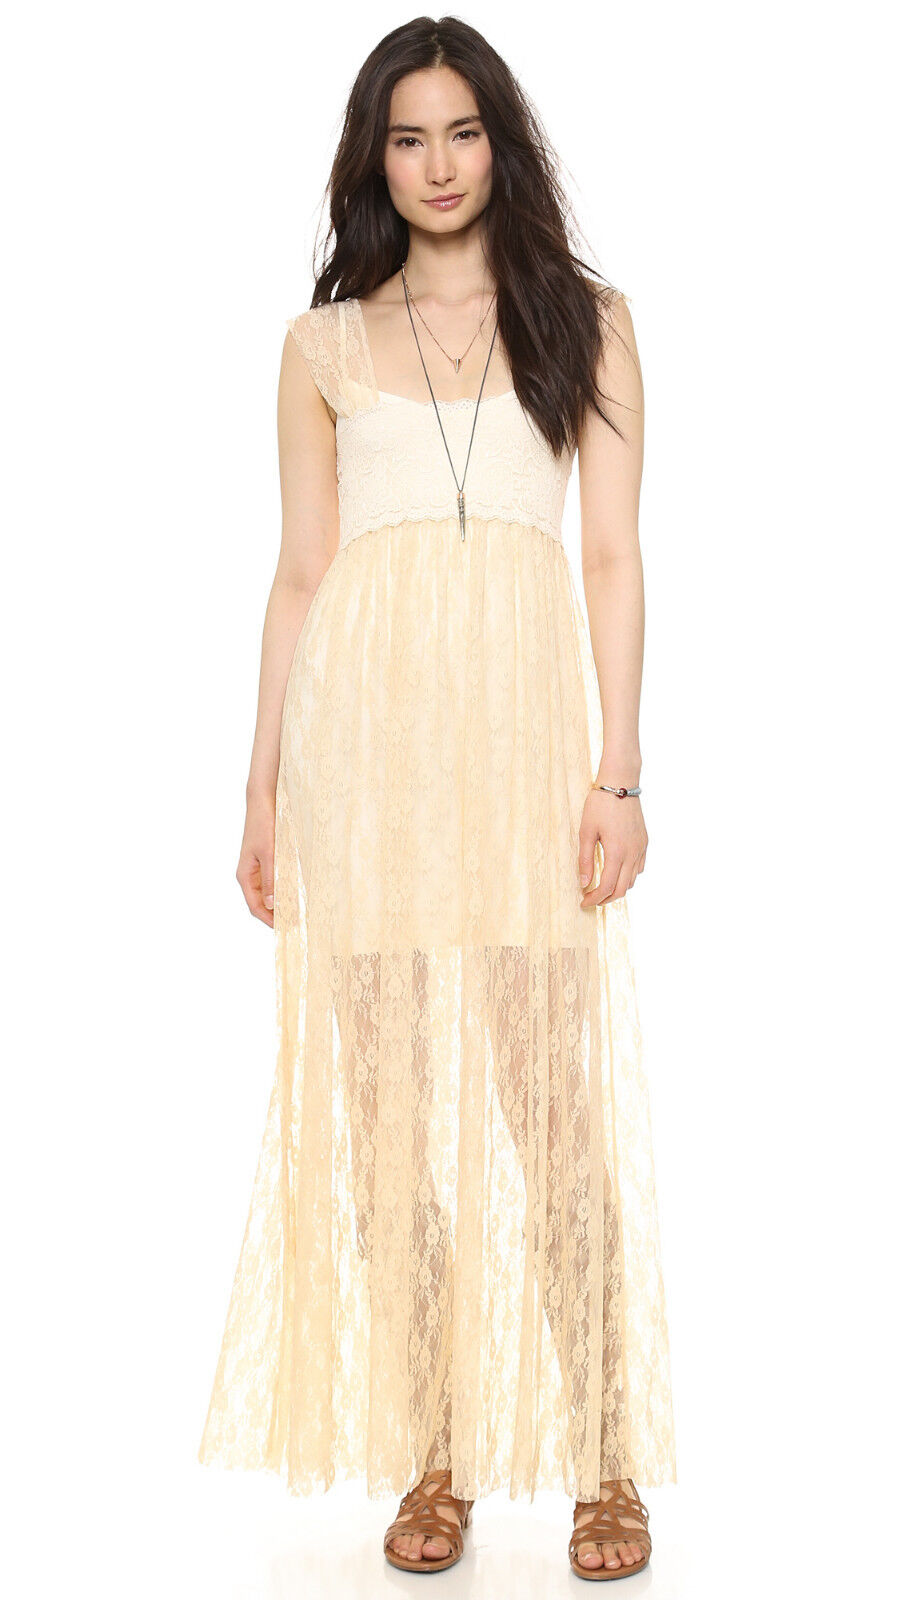 NWT Free People Romance in The Air Slip dress in Tea